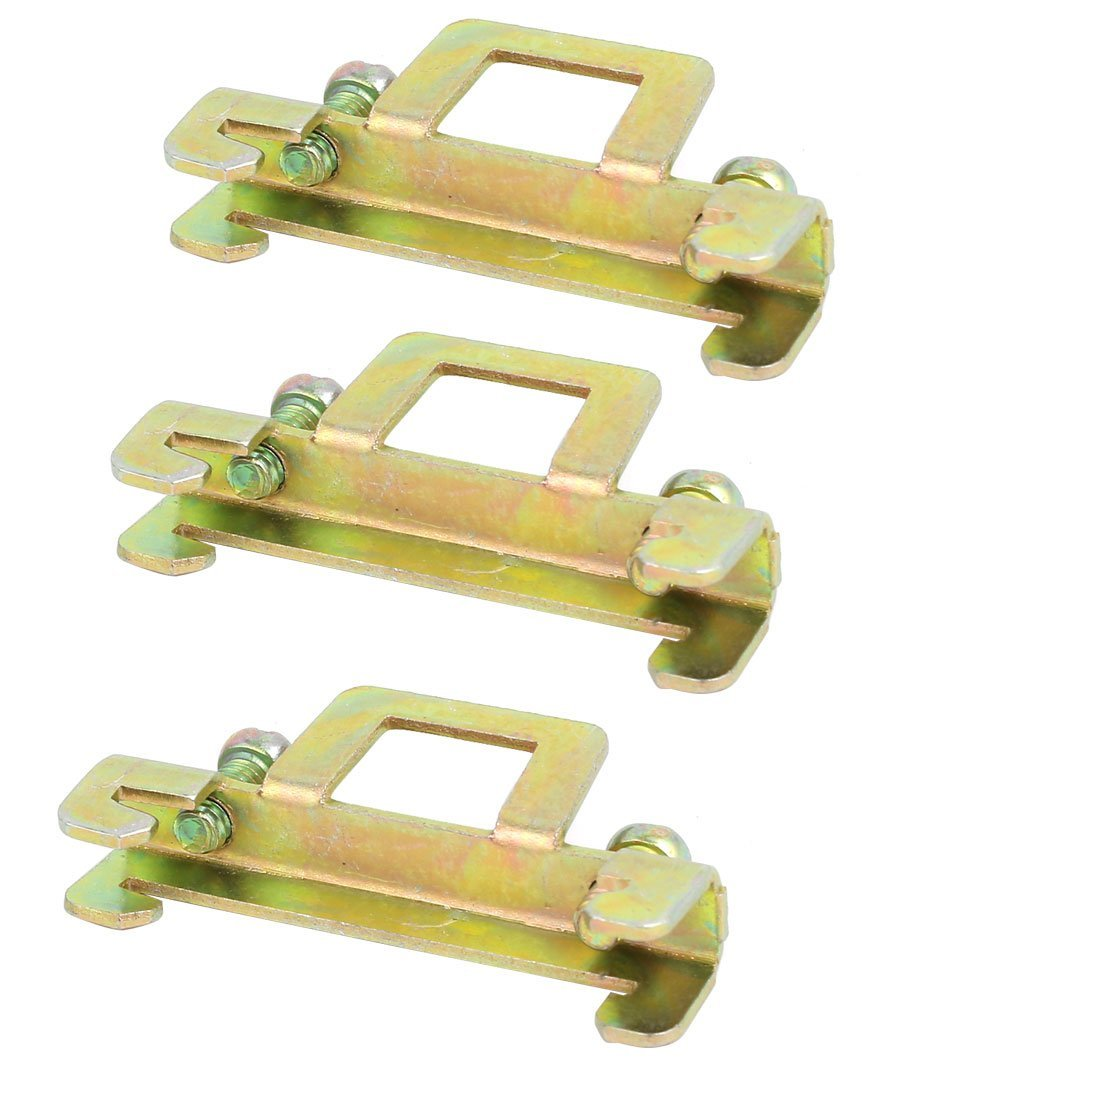 uxcell 3 Pcs 35mm Width BNL6-2 DIN Guide Rail Buckle Fixed Clamp Bronze Tone 44x8x20mm